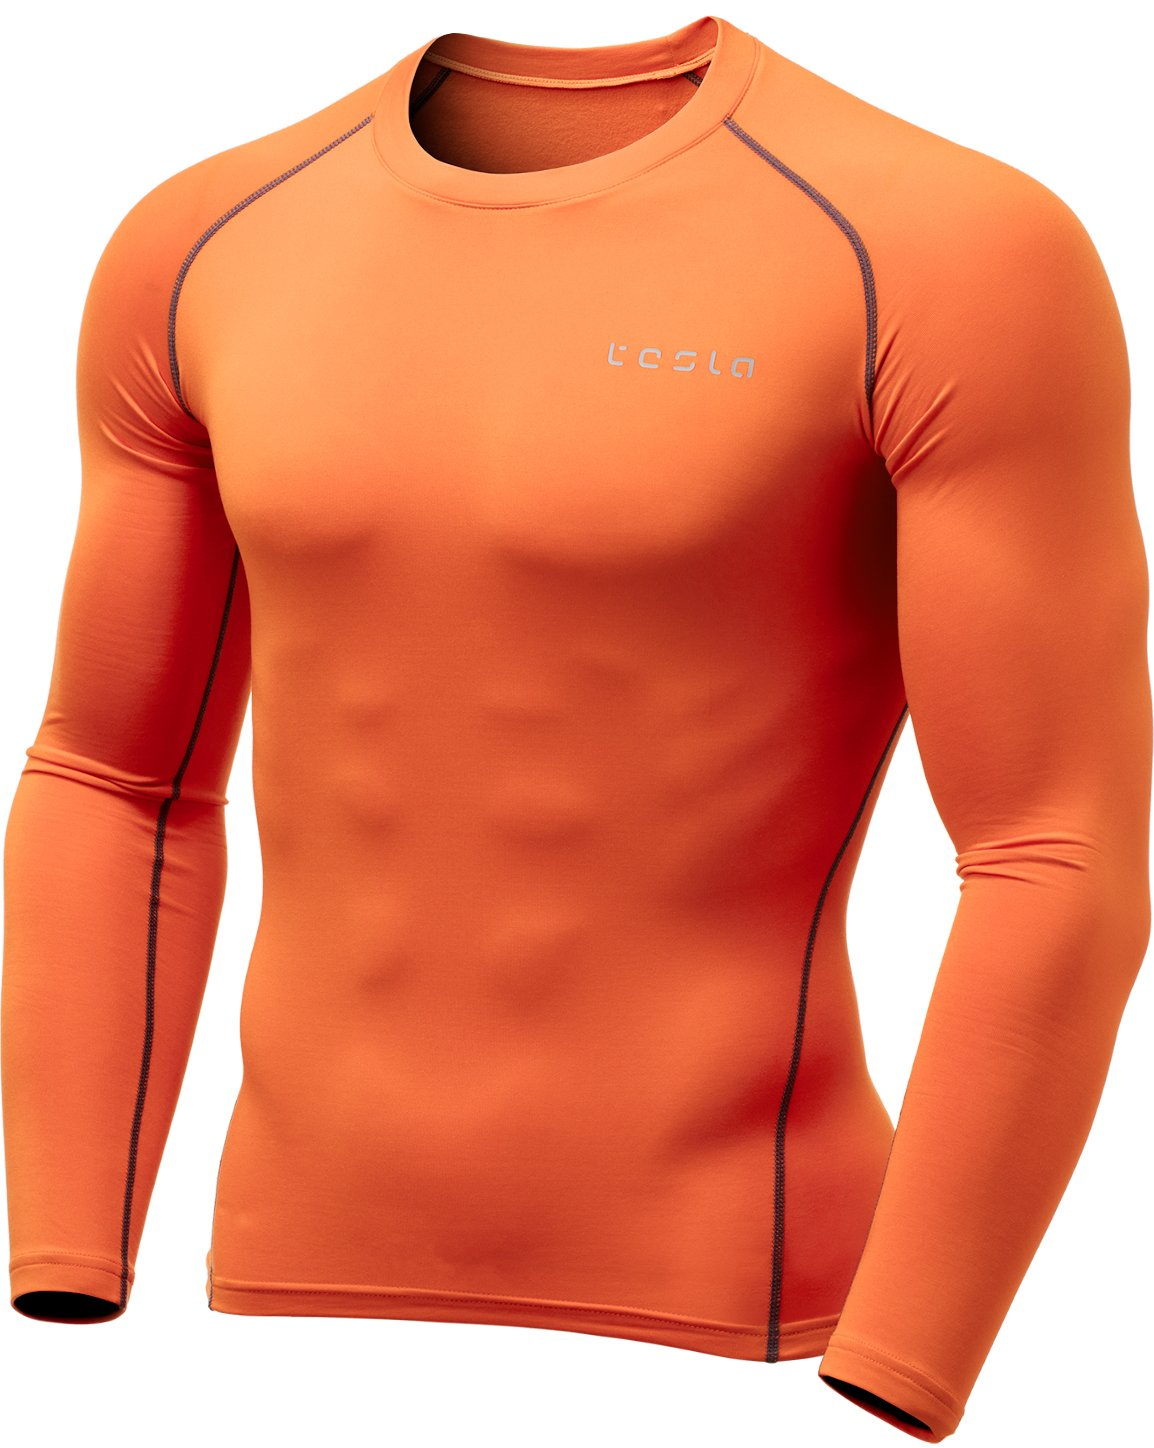 TSLA Men's Thermal Wintergear Compression Baselayer Long Sleeve Top, Thermal Athletic(yud34) - Orange, X-Large by TSLA